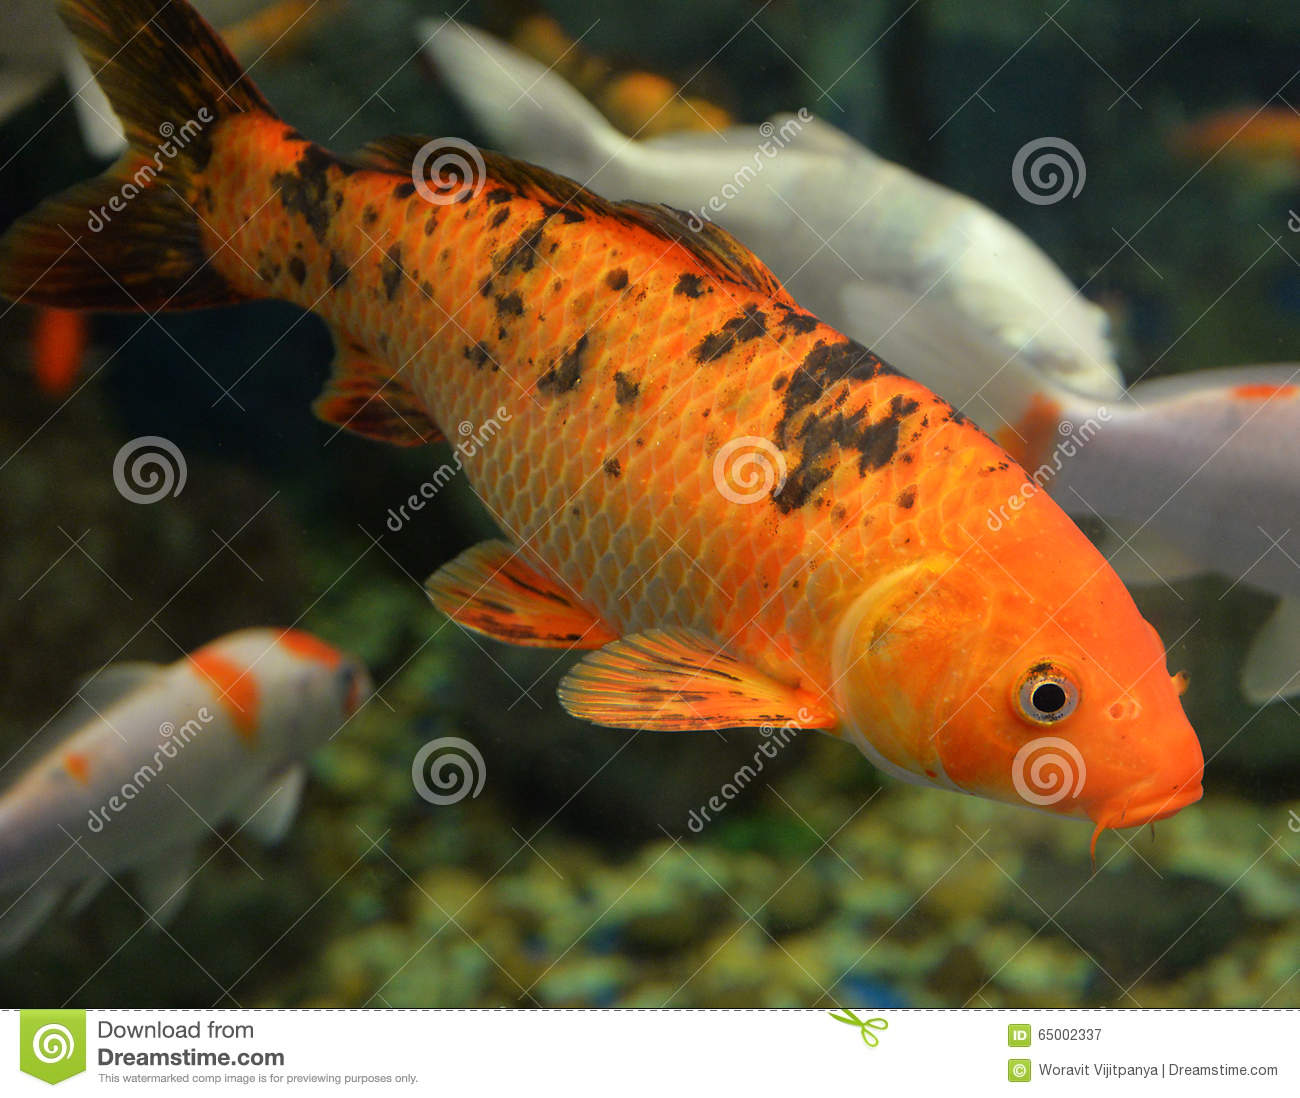 Orange koi carp stock photo image 65002337 for Orange koi carp